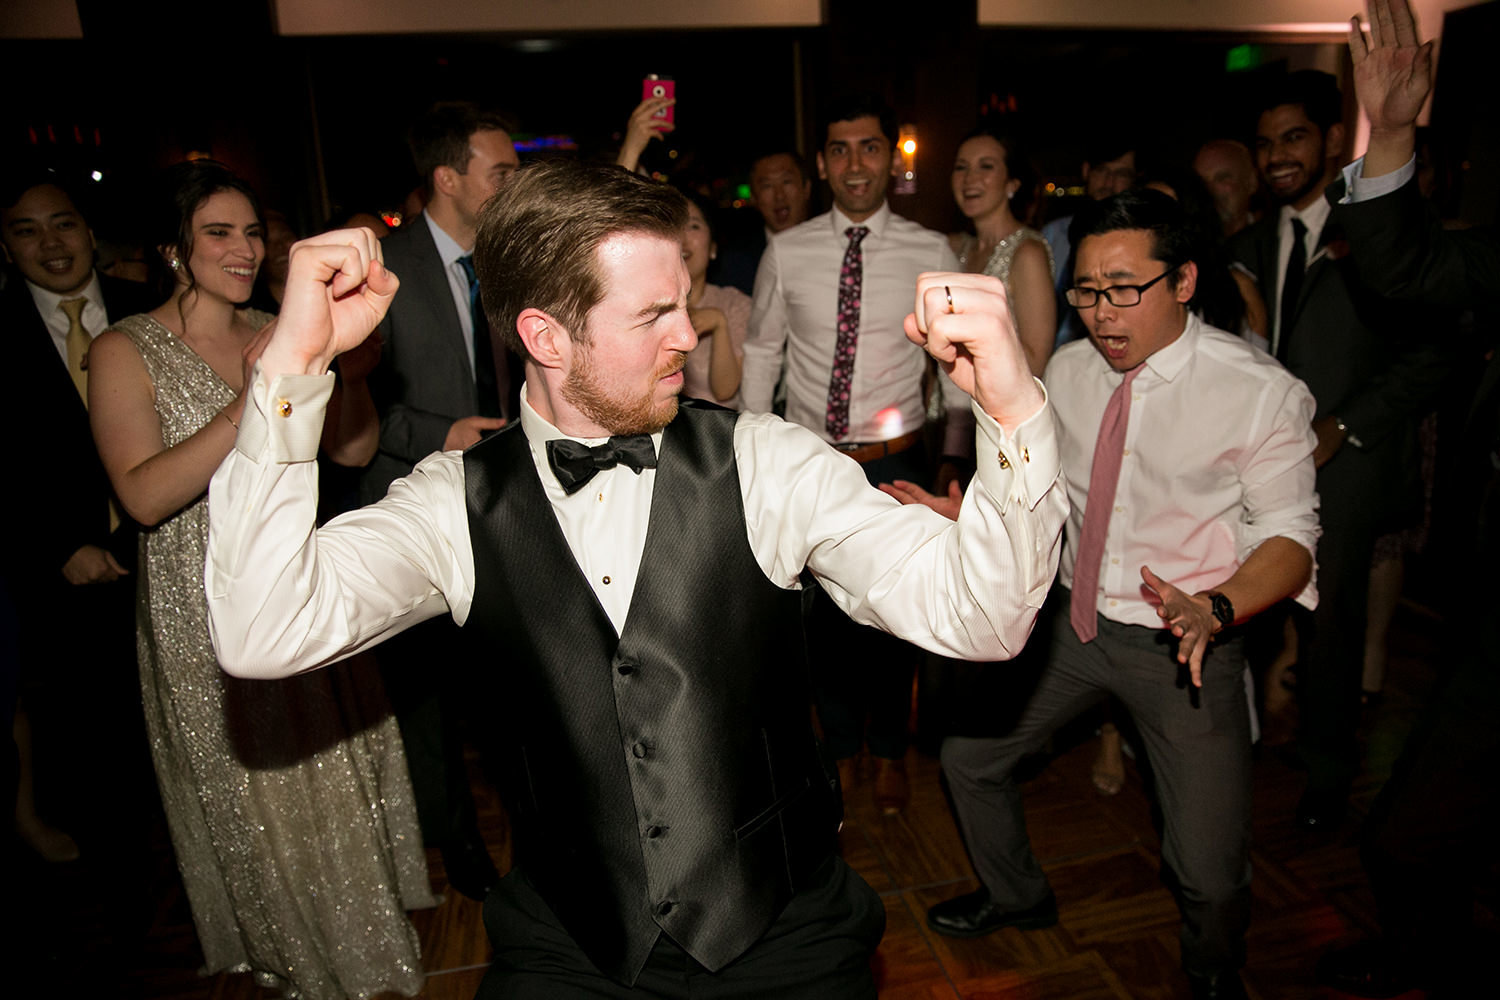 groom dancing at reception being silly